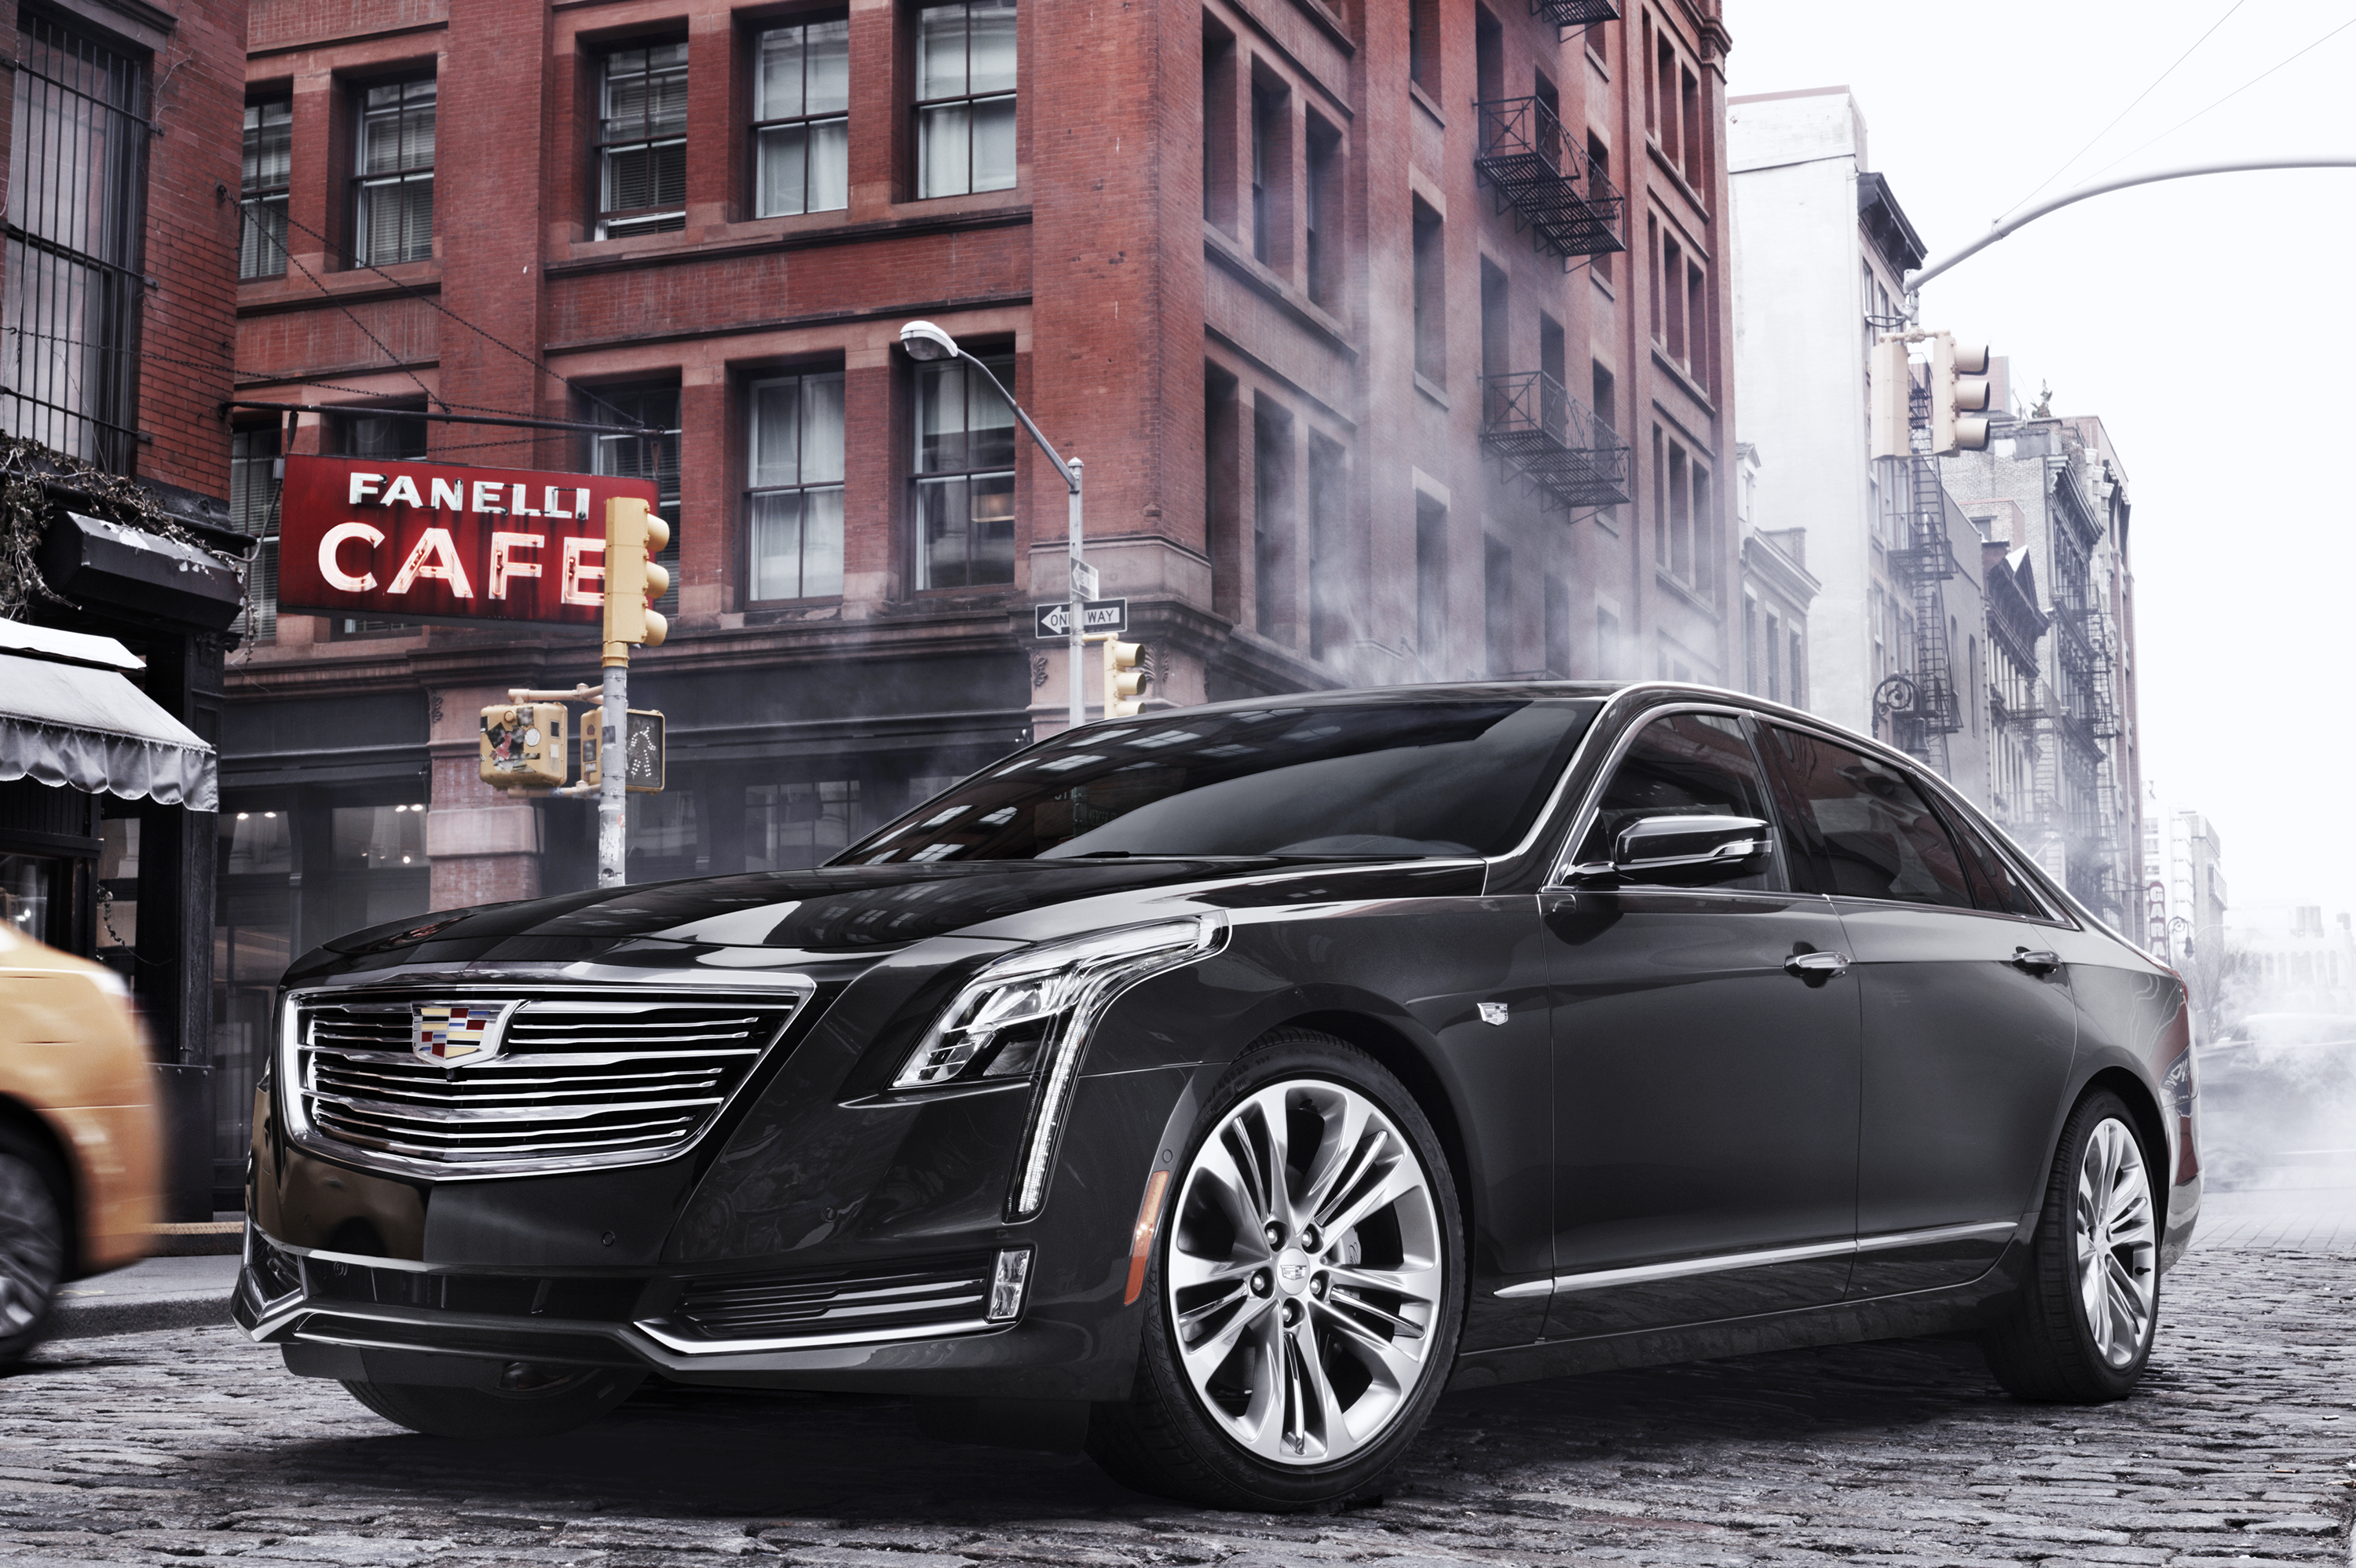 2016 cadillac ct6 begins production in january pricing starts at 53 495 autoevolution. Black Bedroom Furniture Sets. Home Design Ideas